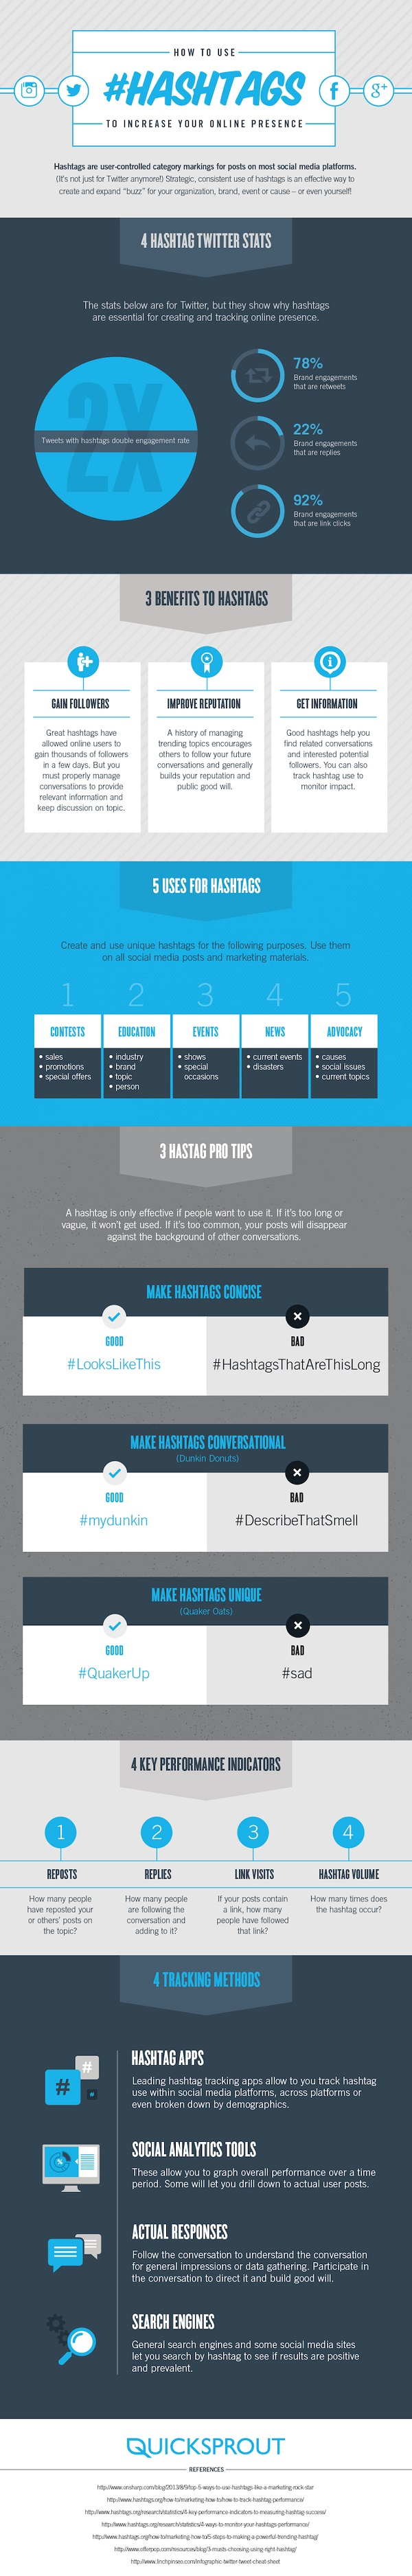 Use #Hashtags to Boost Your Brand Presence Online #Infographic via @SocialTimes @Kimberlee Morrison